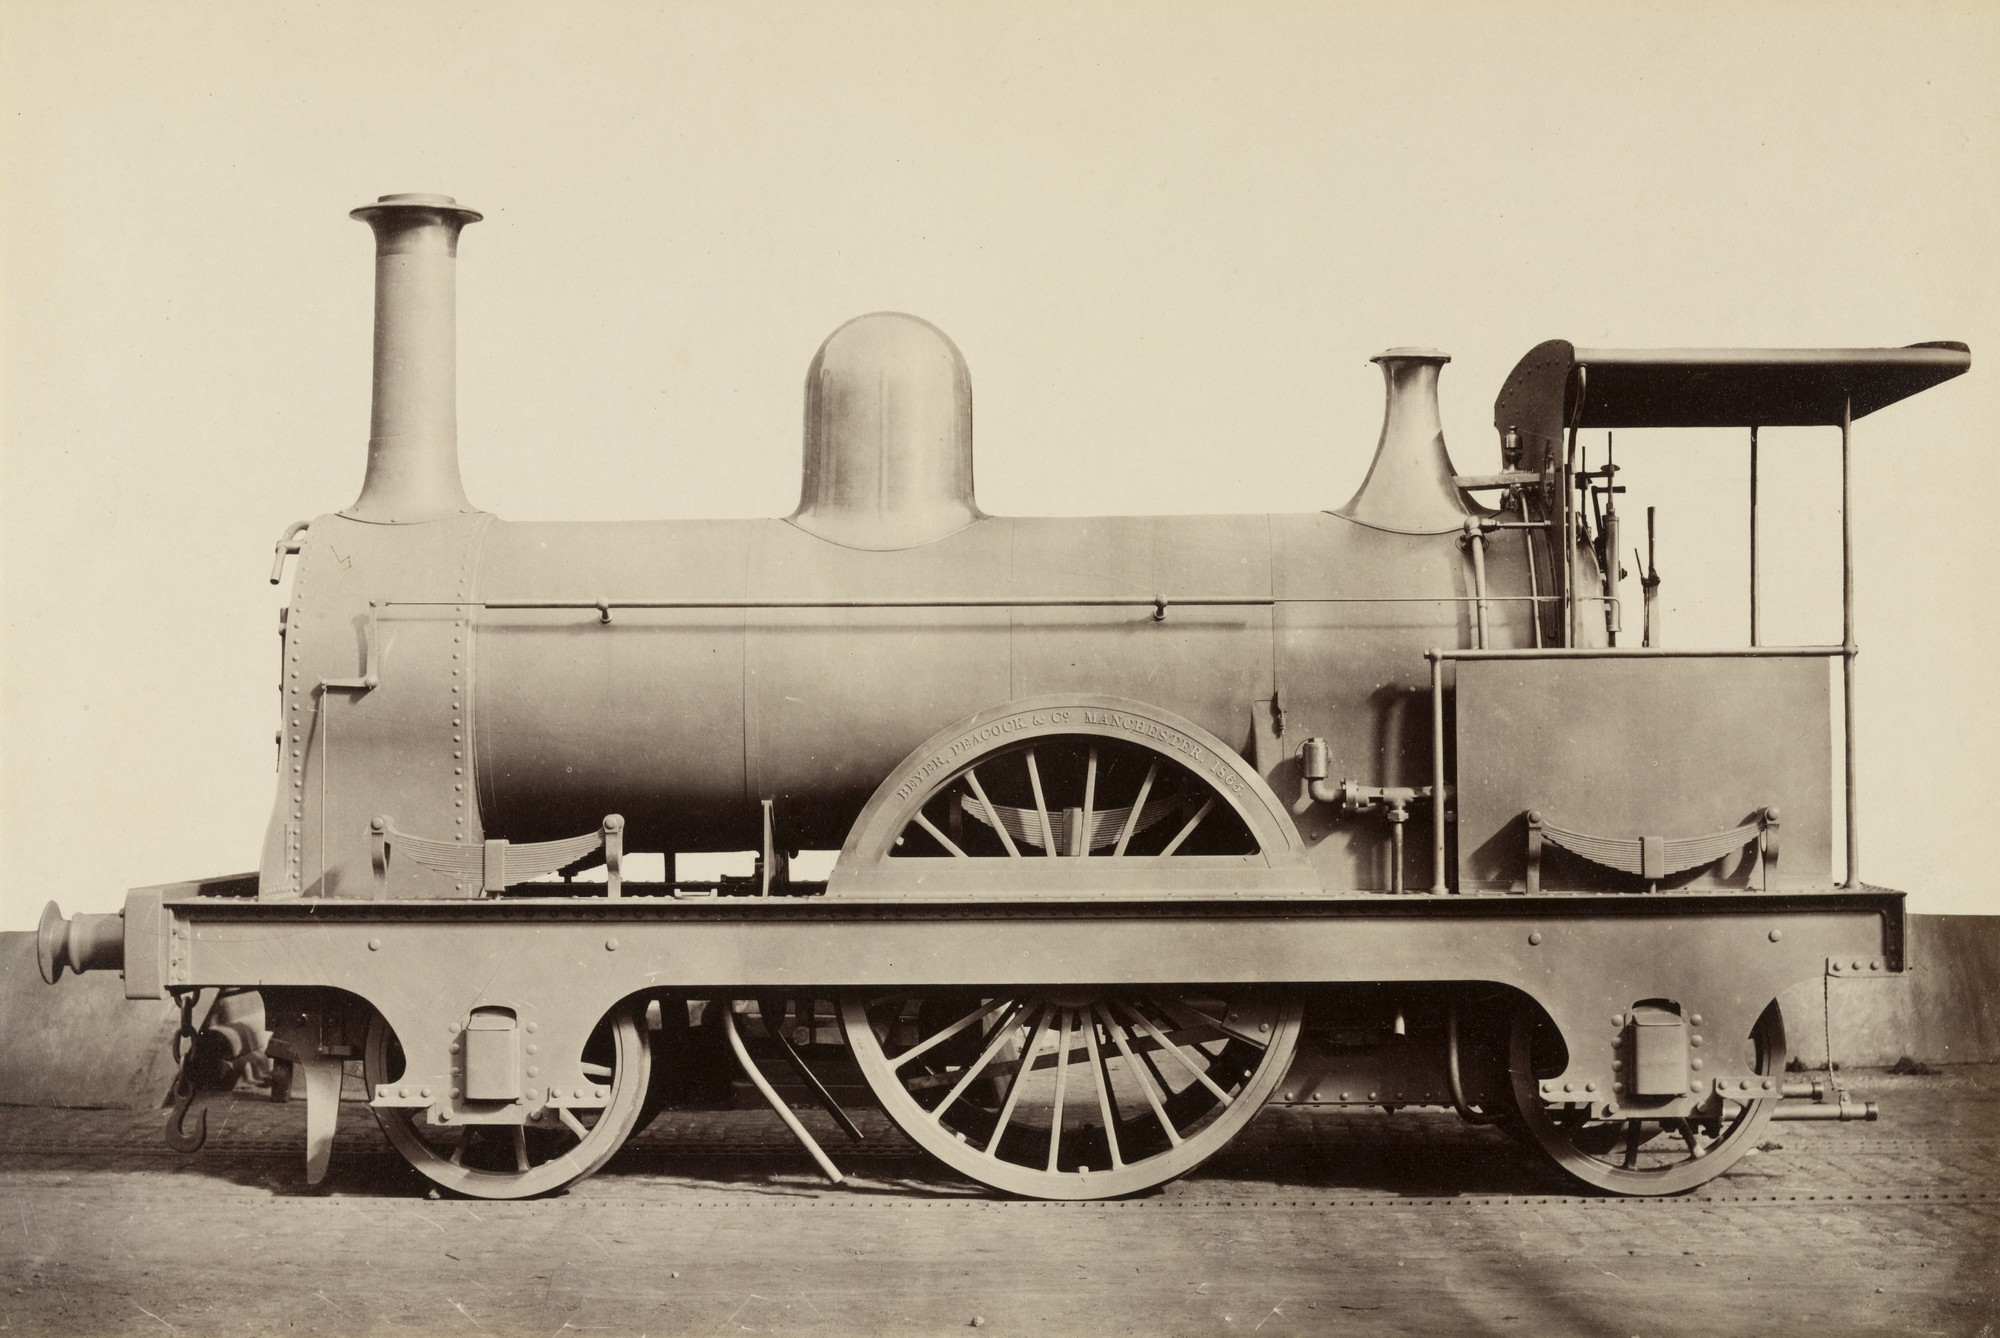 James Mudd. New South Wales Government Railway. 1865